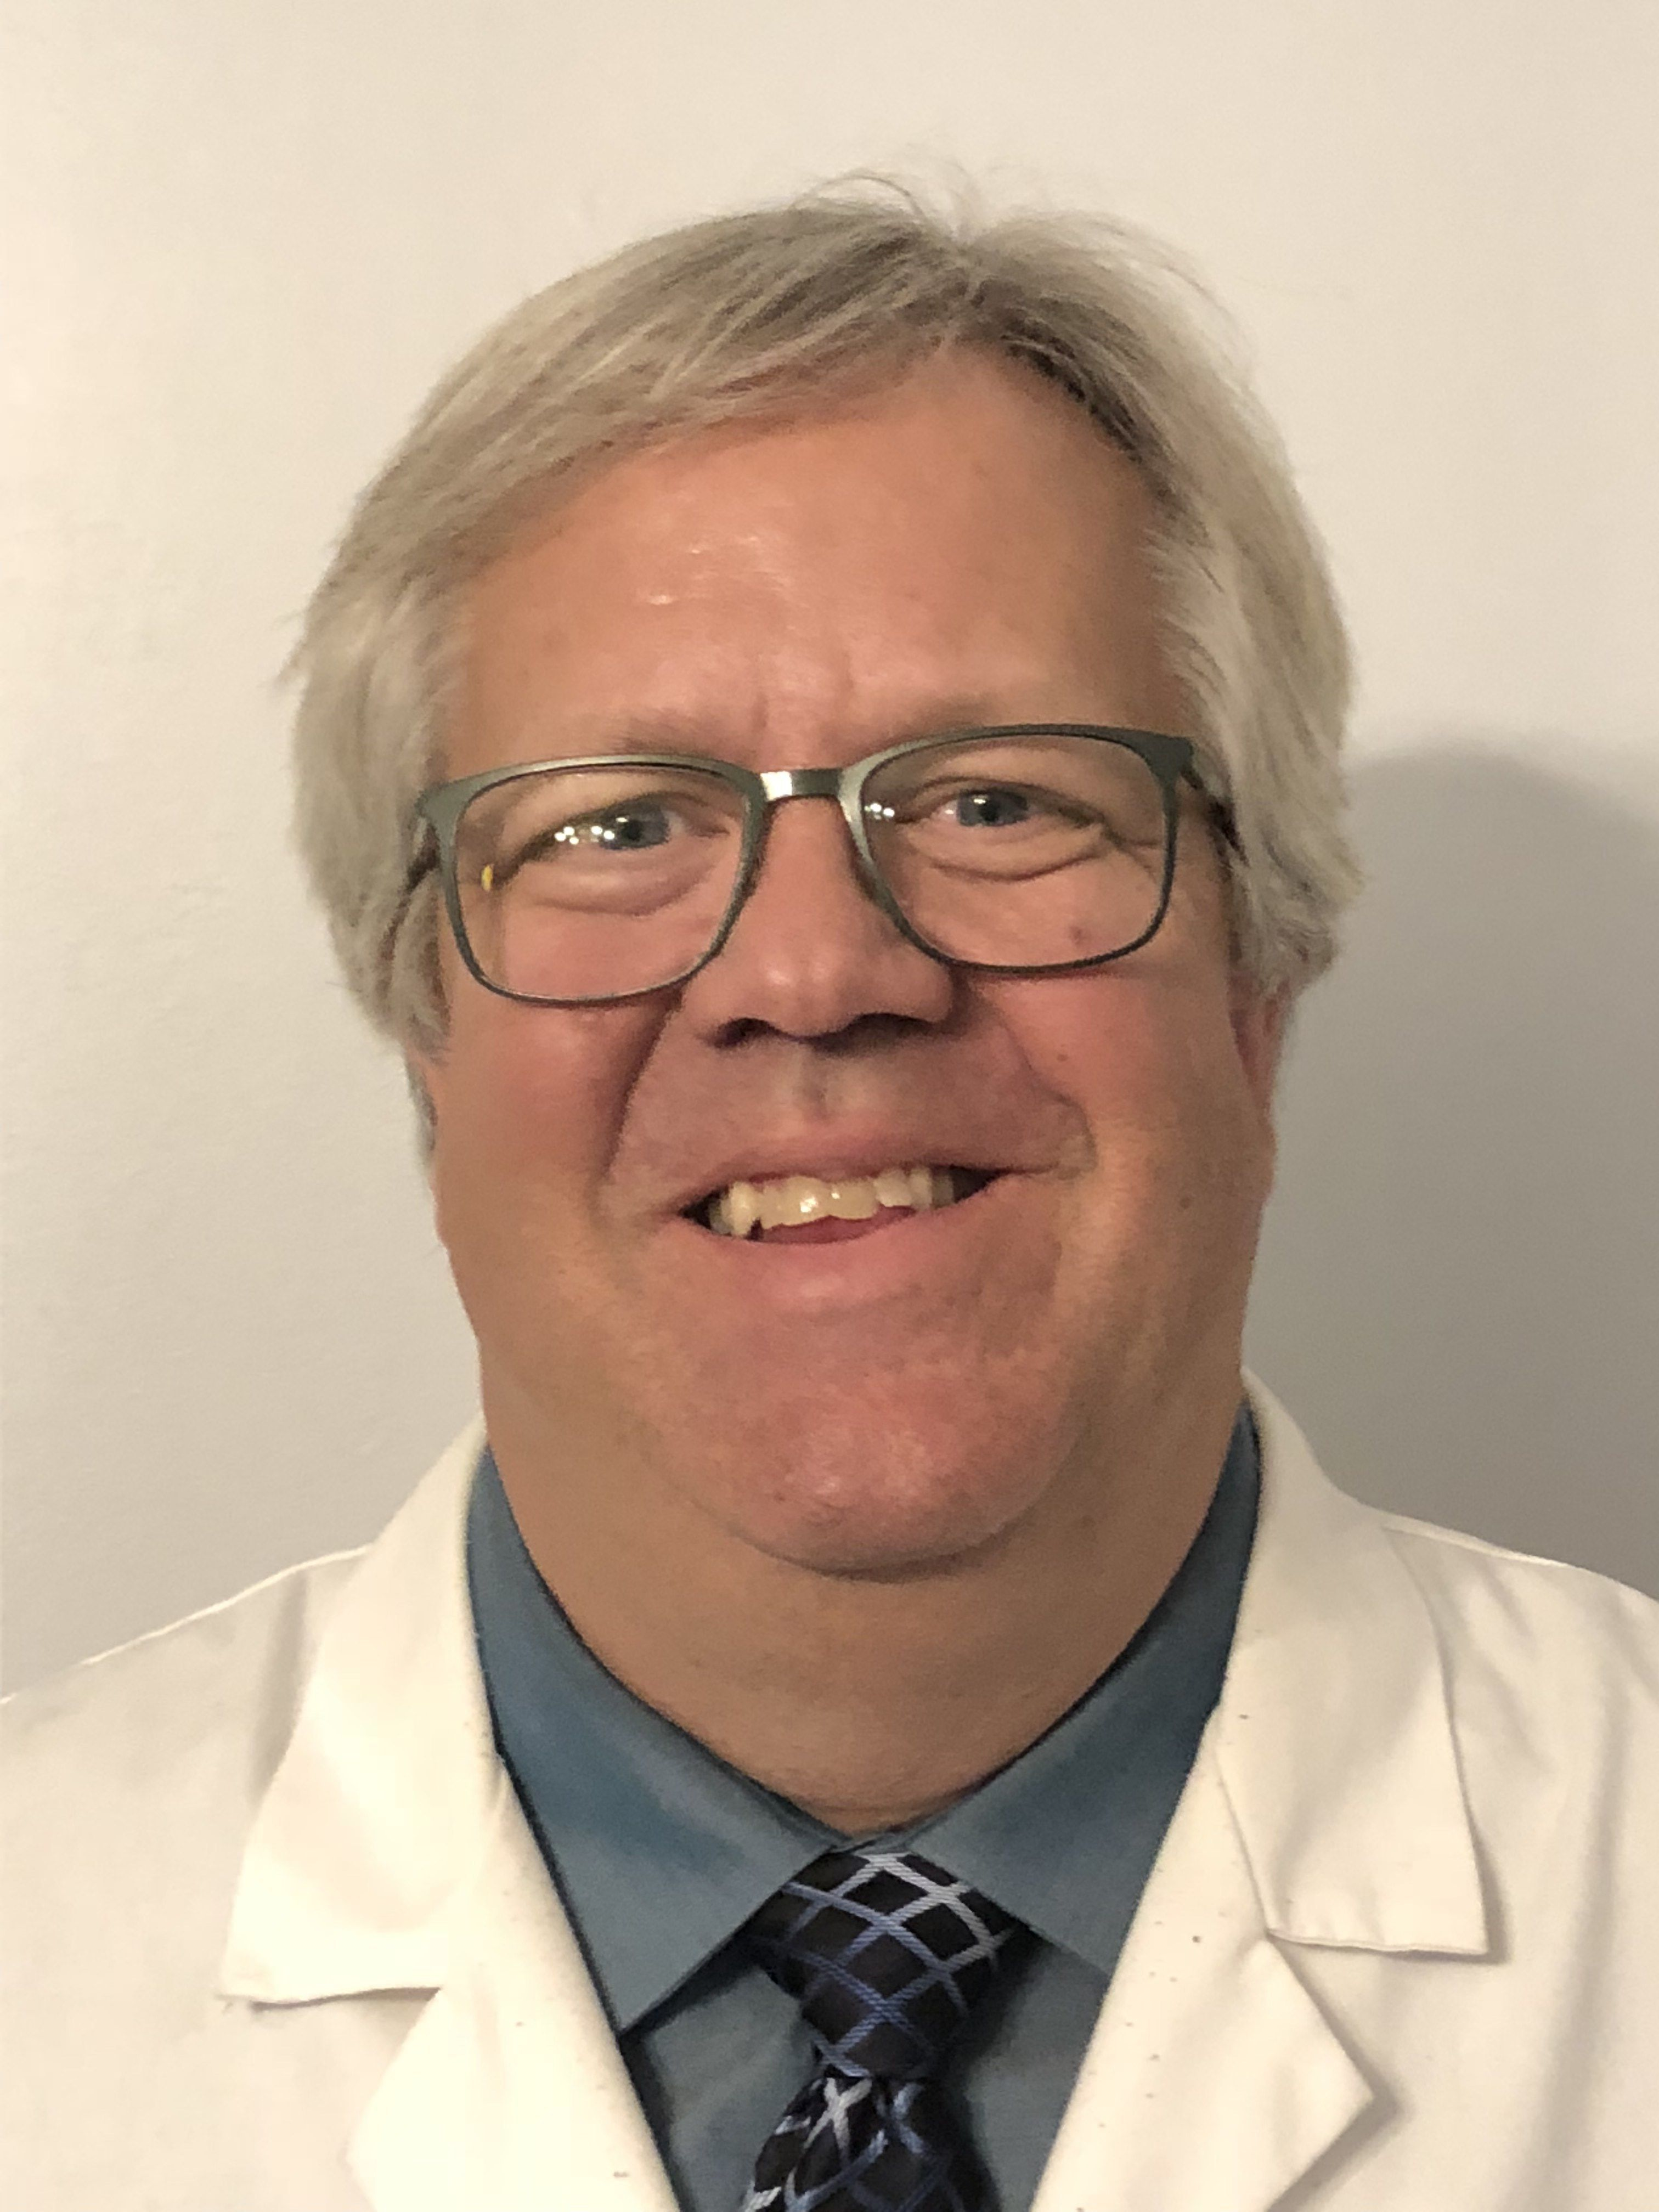 Dr. Adams starts at Southwest Healthcare Services